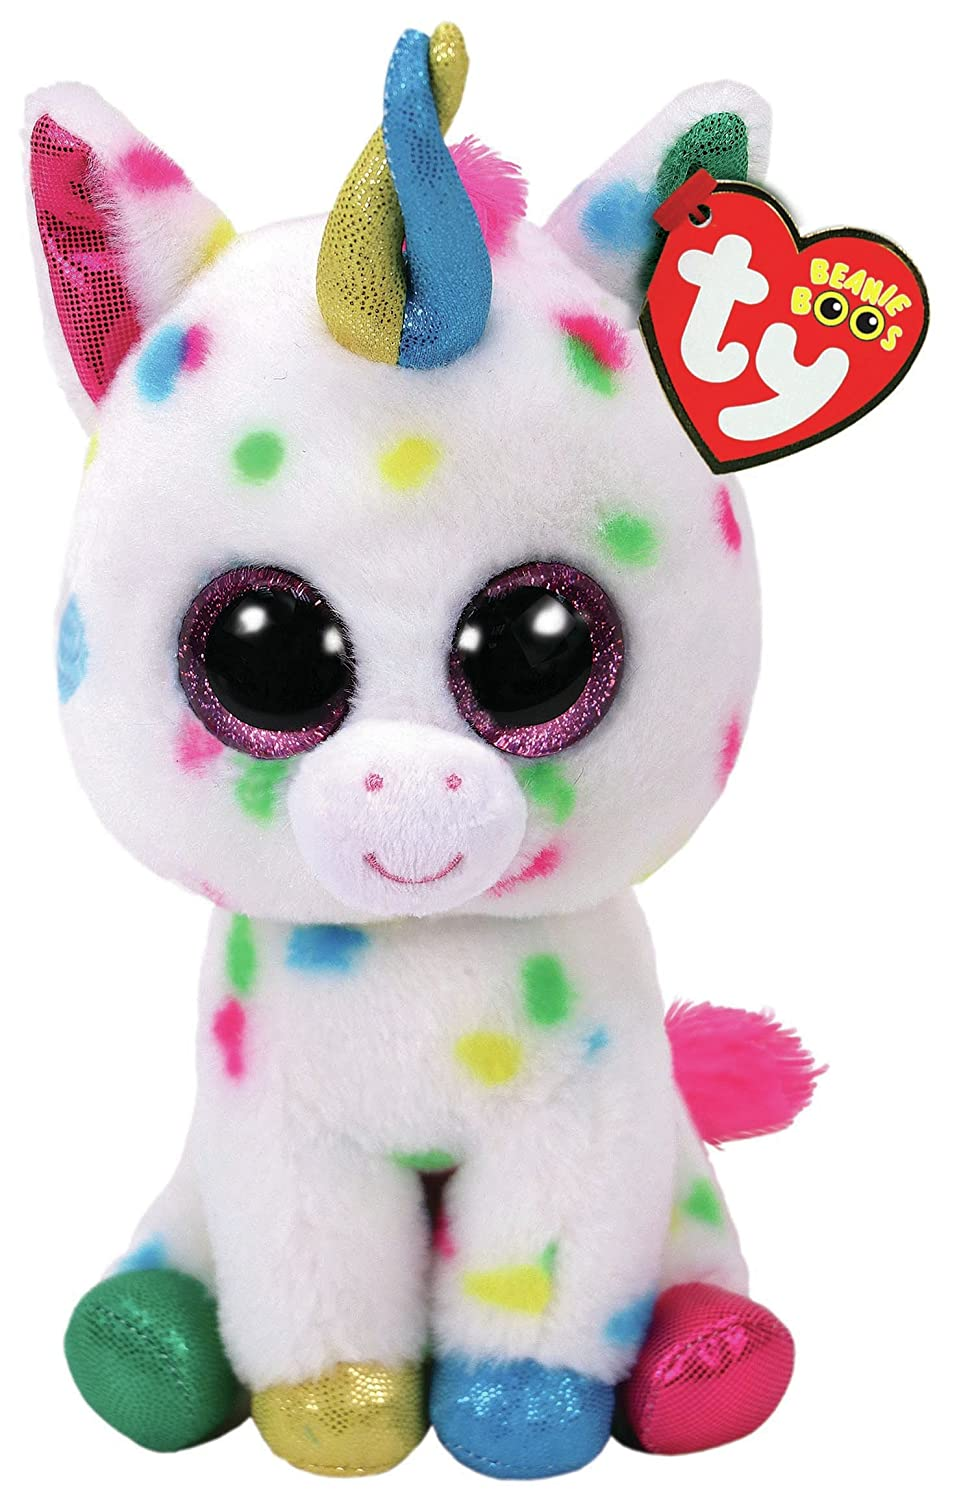 TY Beanie Boo - 36898 - Harmonie the Unicorn 15cm Fantasietiere